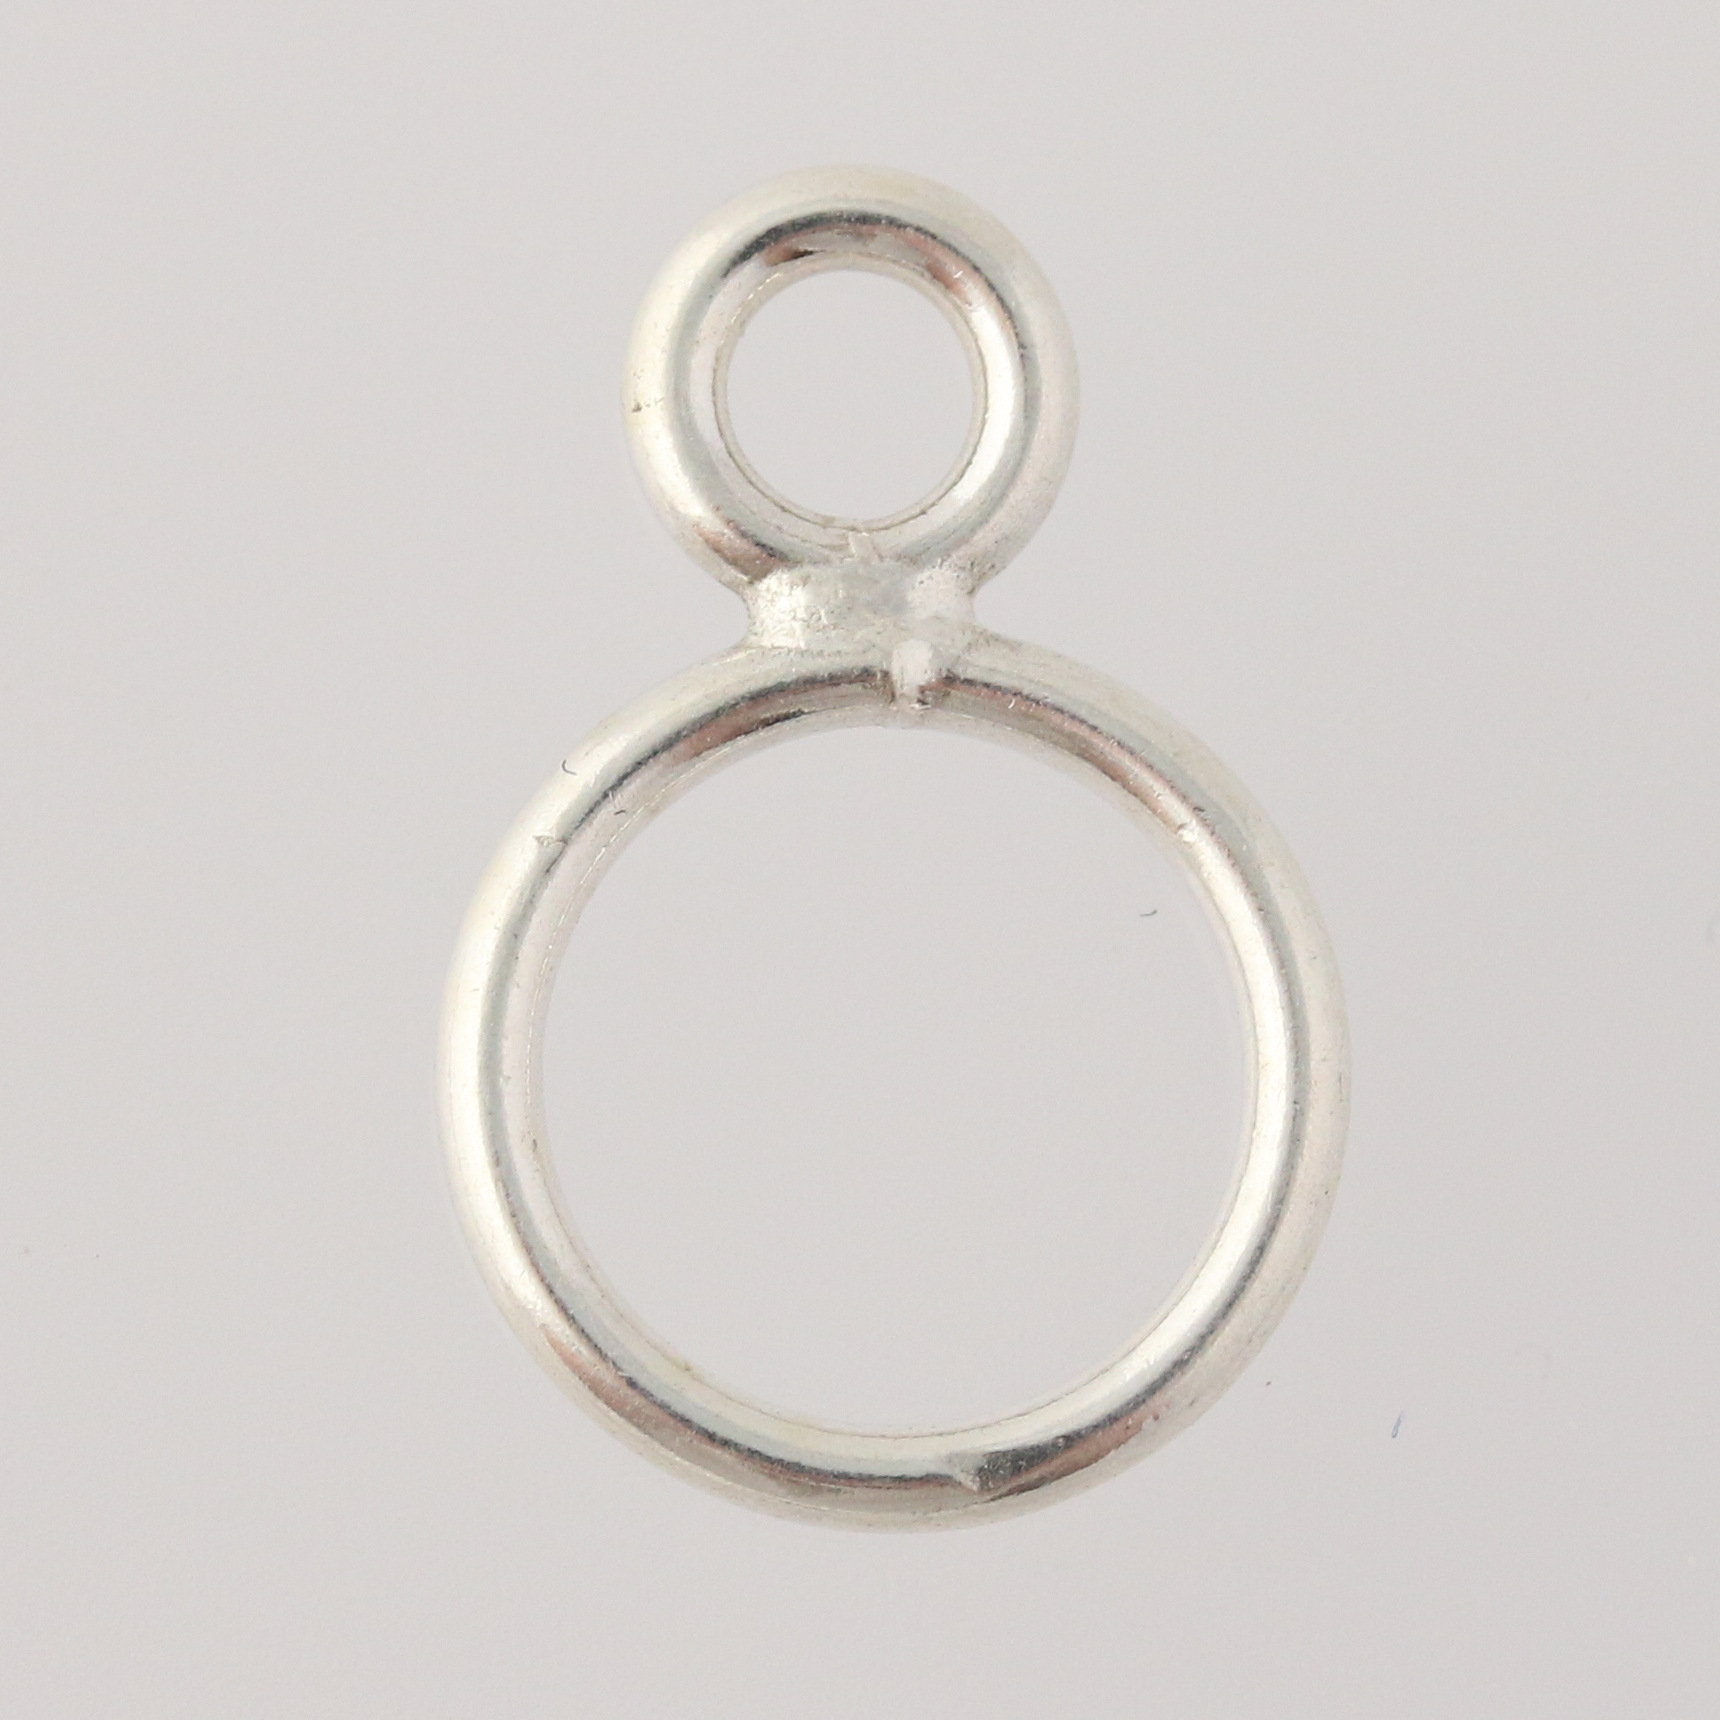 new ring toggle clasp sterling silver jewelry findings